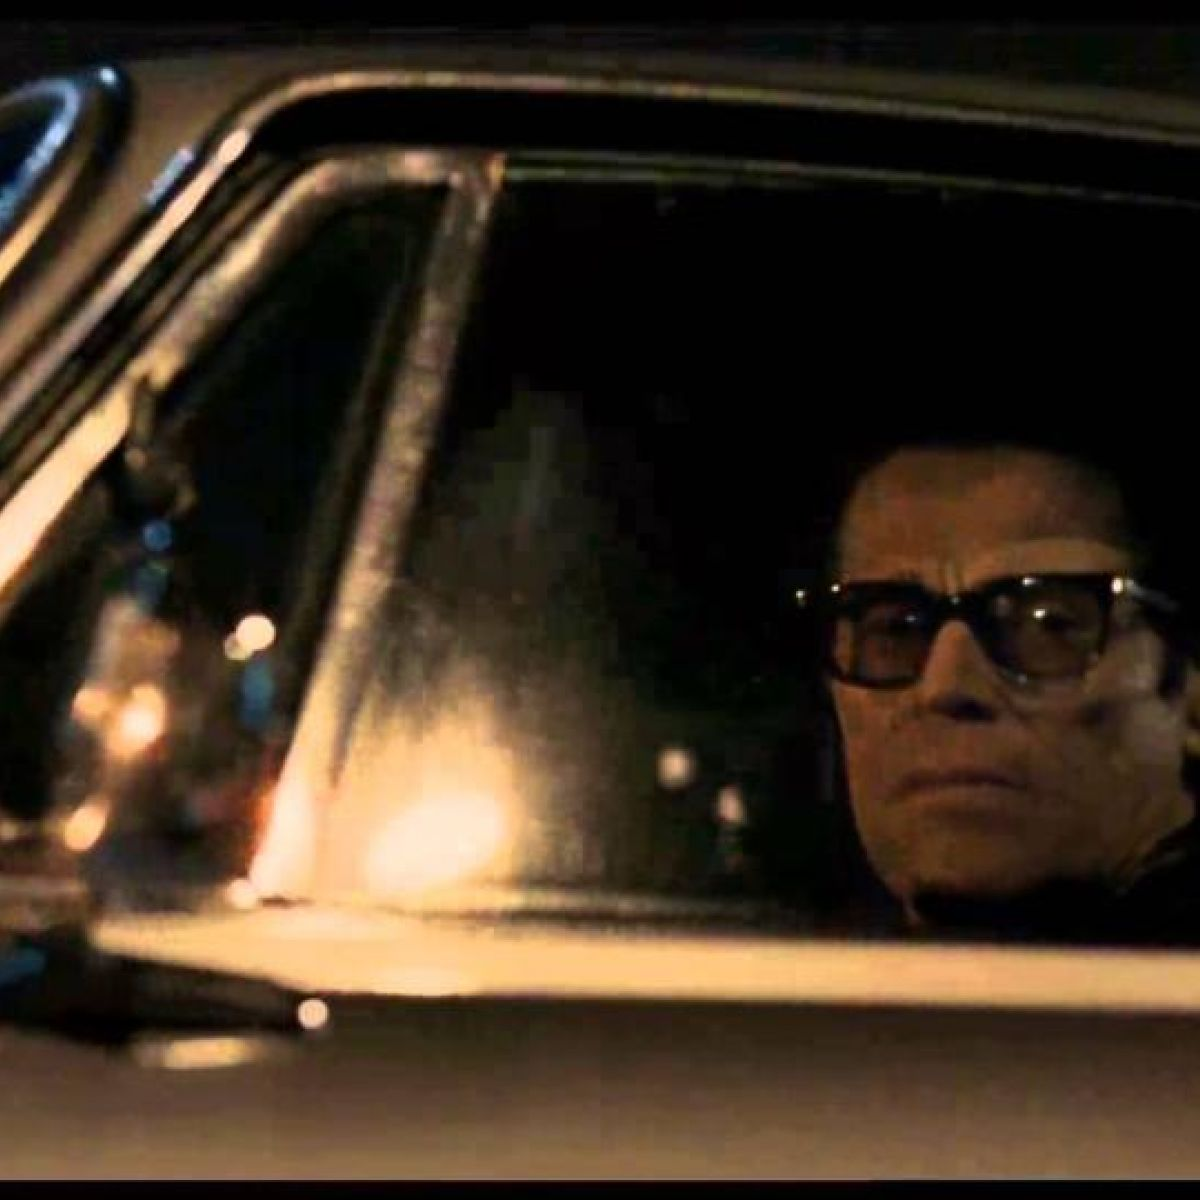 Pasolini review: A celebration of high-brow hipster chic